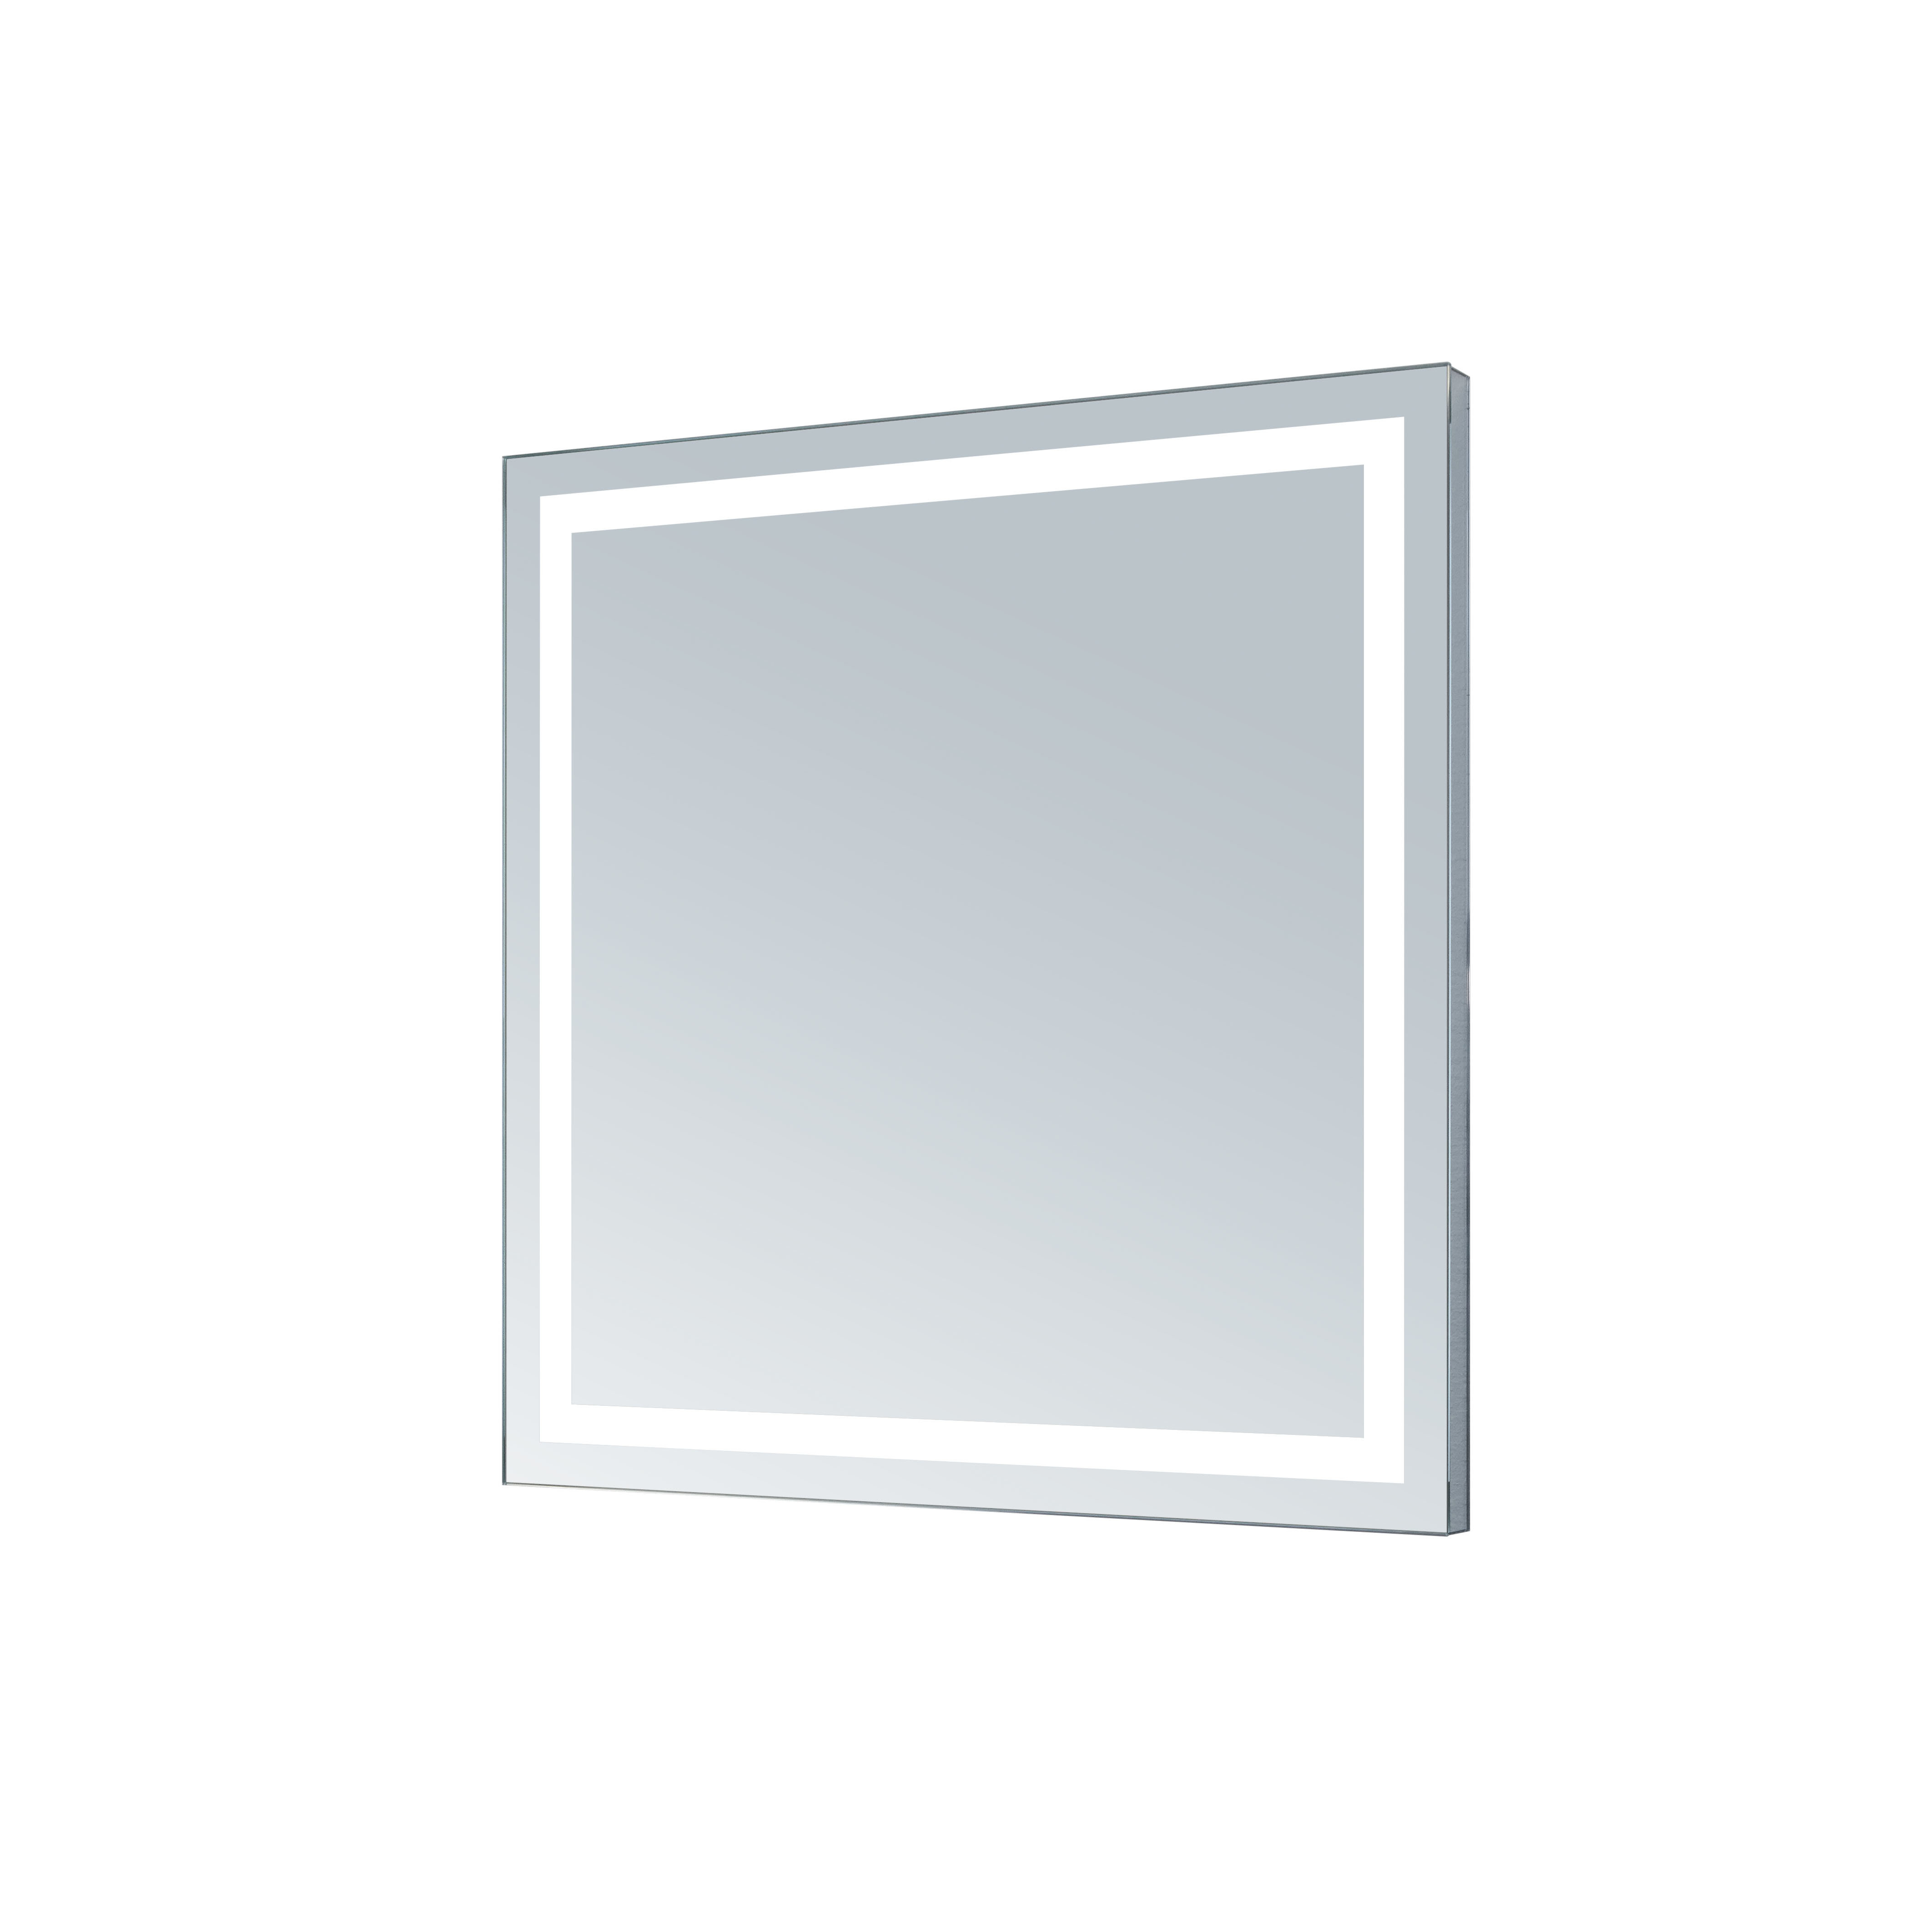 Aluminum Frame Electric Wall Mirror Within Tetbury Frameless Tri Bevel Wall Mirrors (Image 2 of 20)